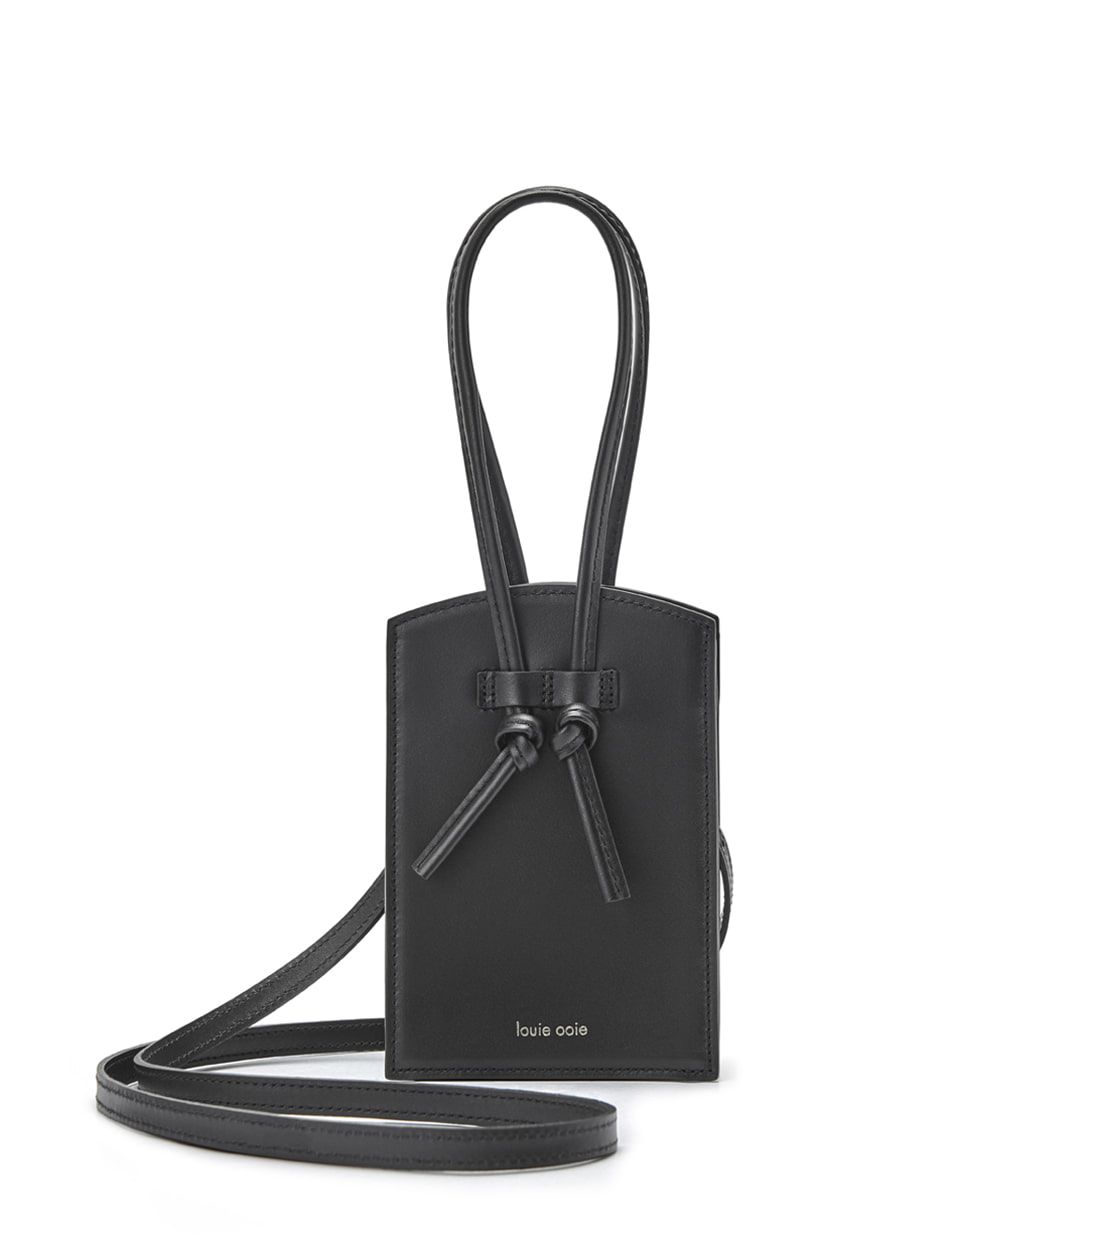 peggy bag - black